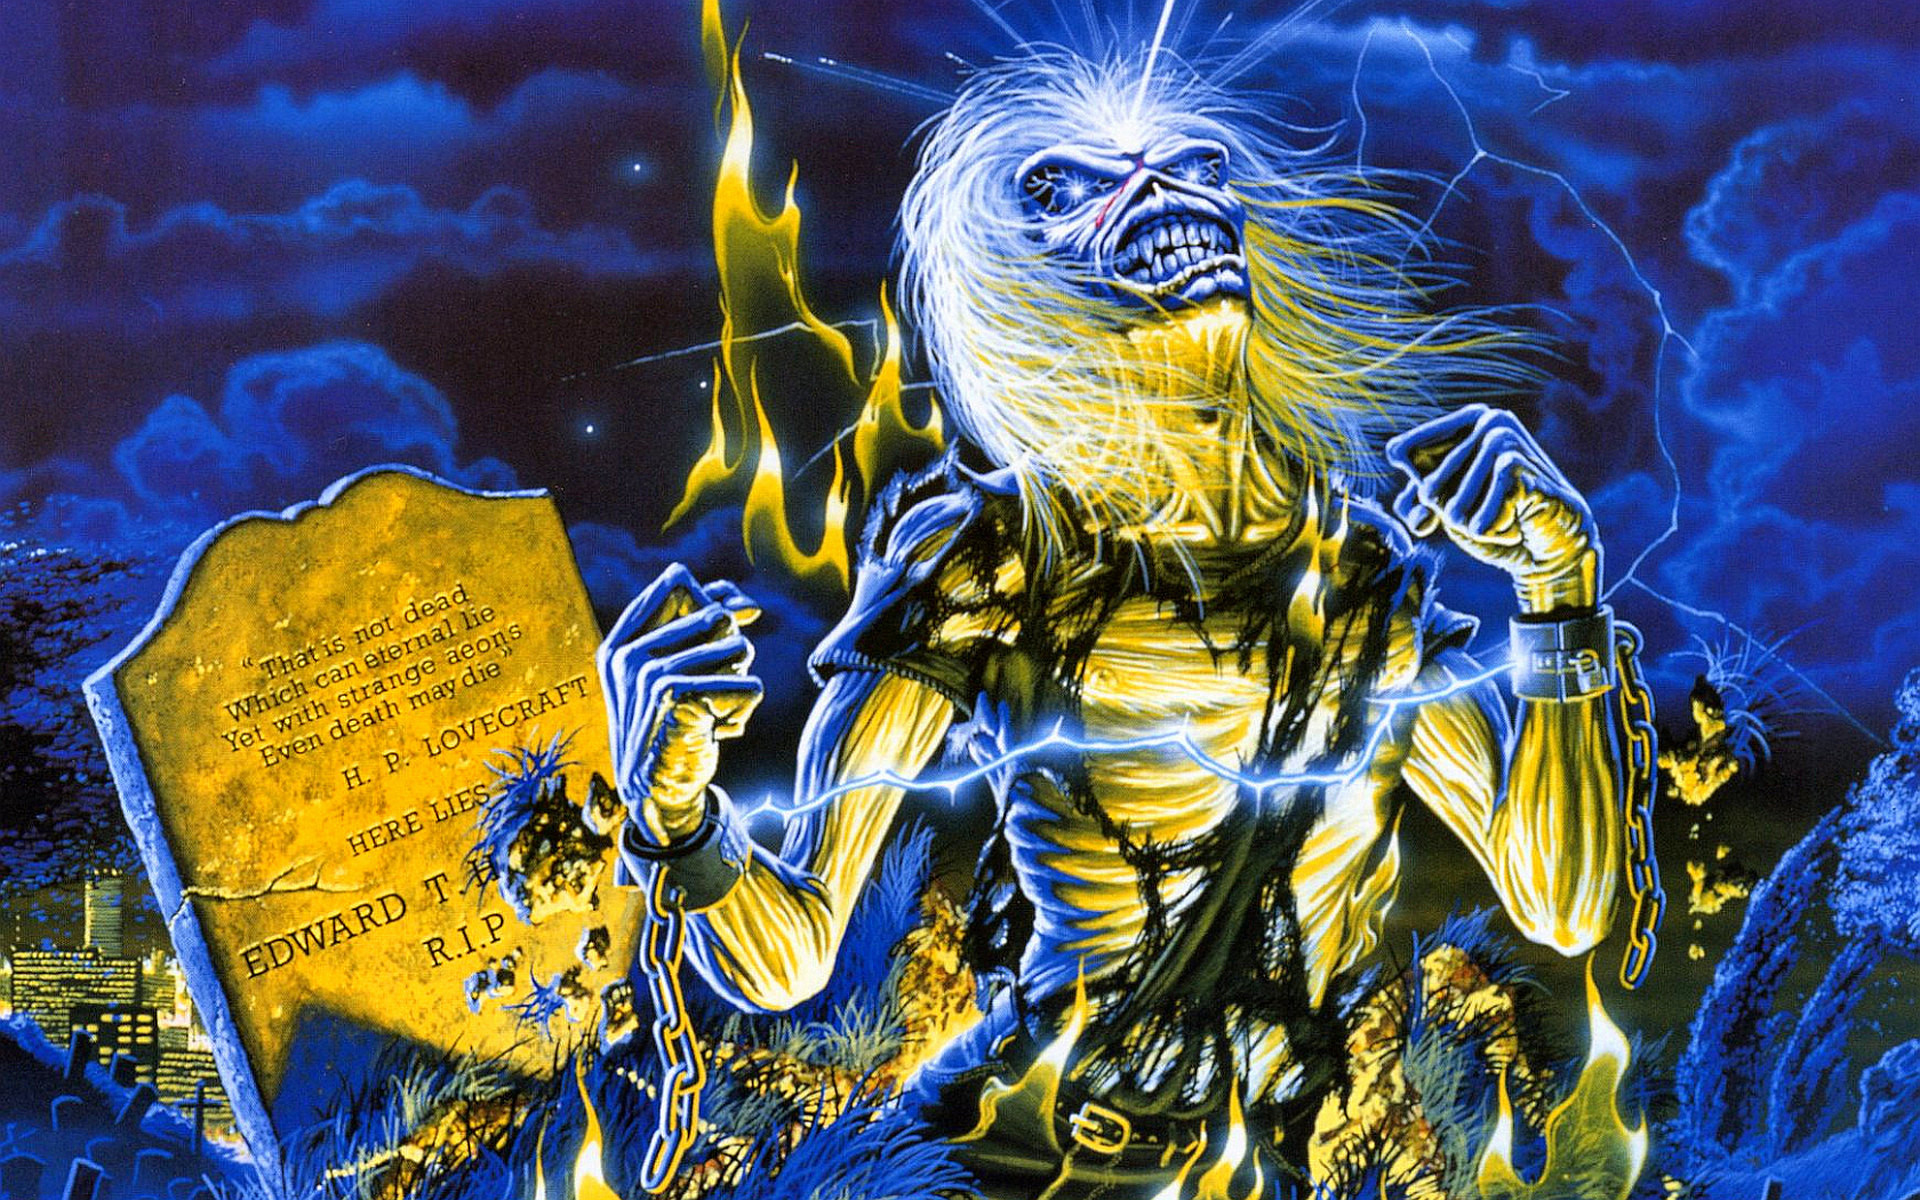 Iron Maiden ~ Live After Death.My favorite Maiden album cover.